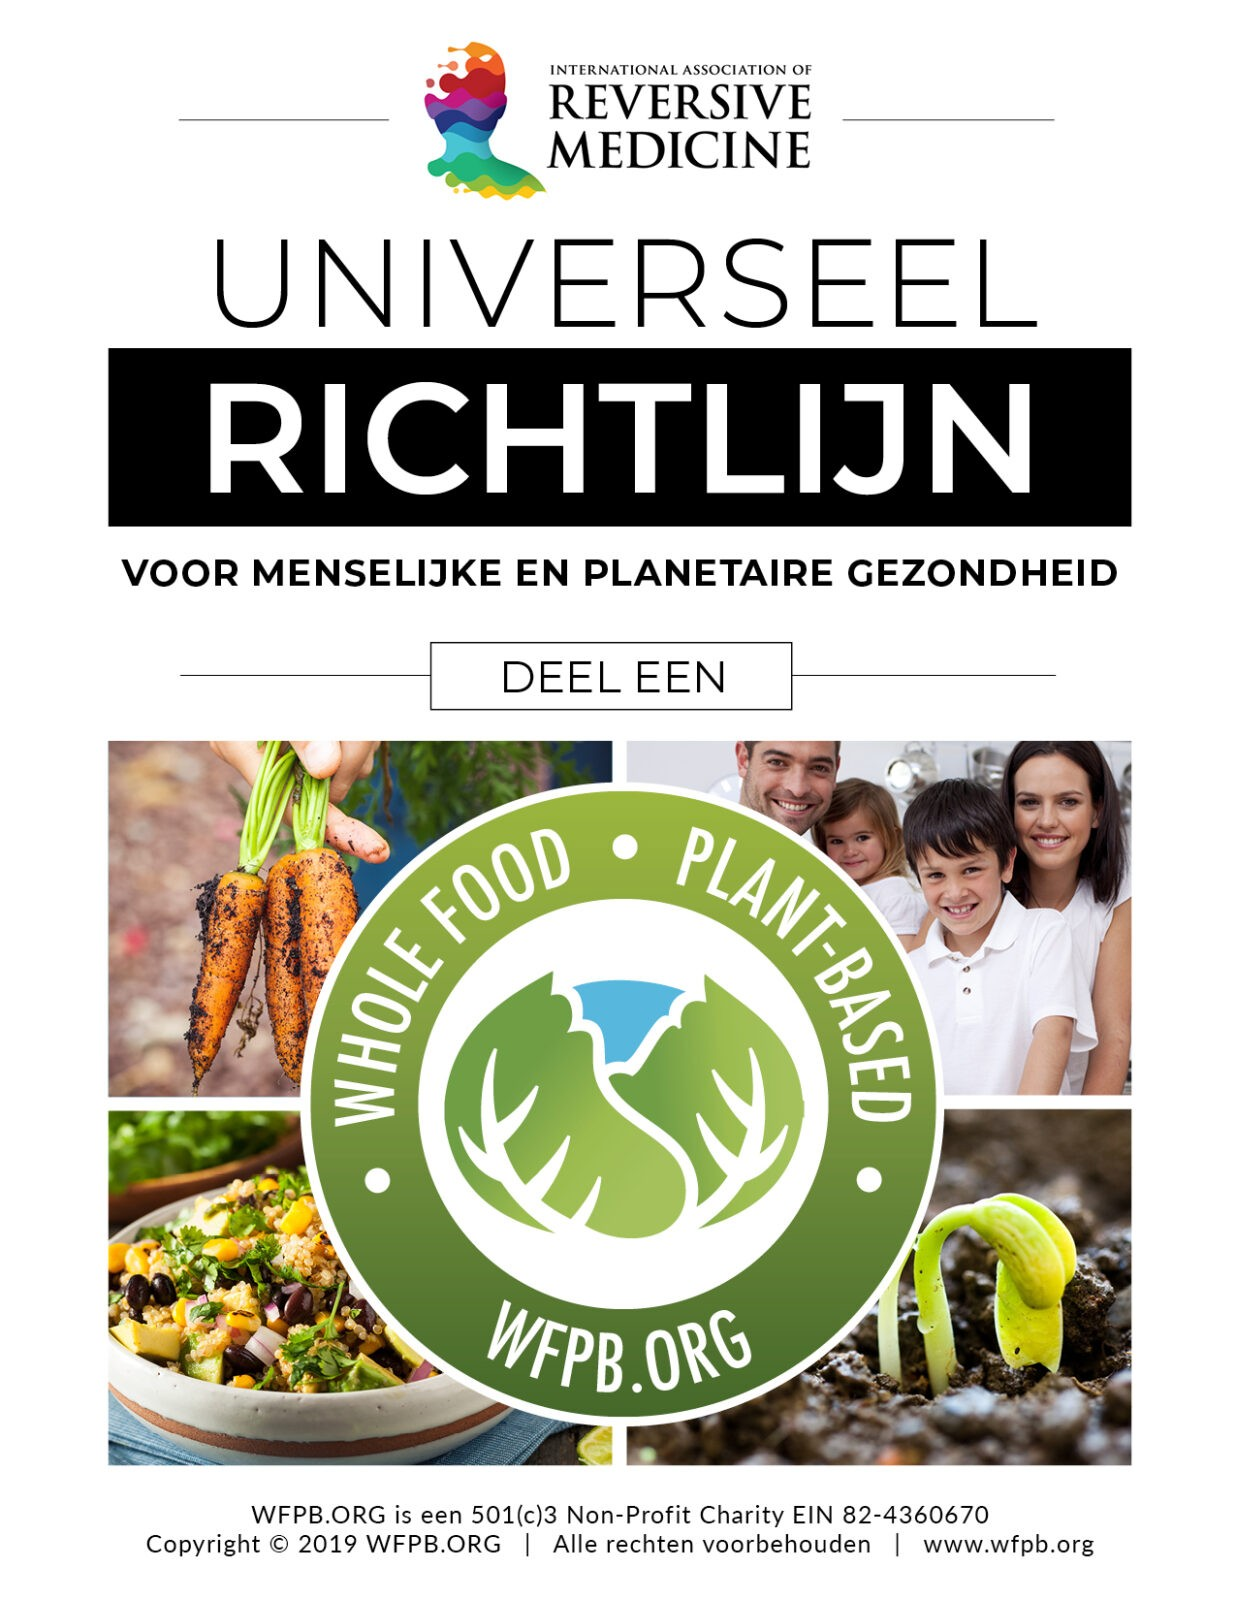 NEDERLANDS | UNIVERSAL GUIDELINE FOR HUMAN AND PLANETARY HEALTH | WFPB.ORG